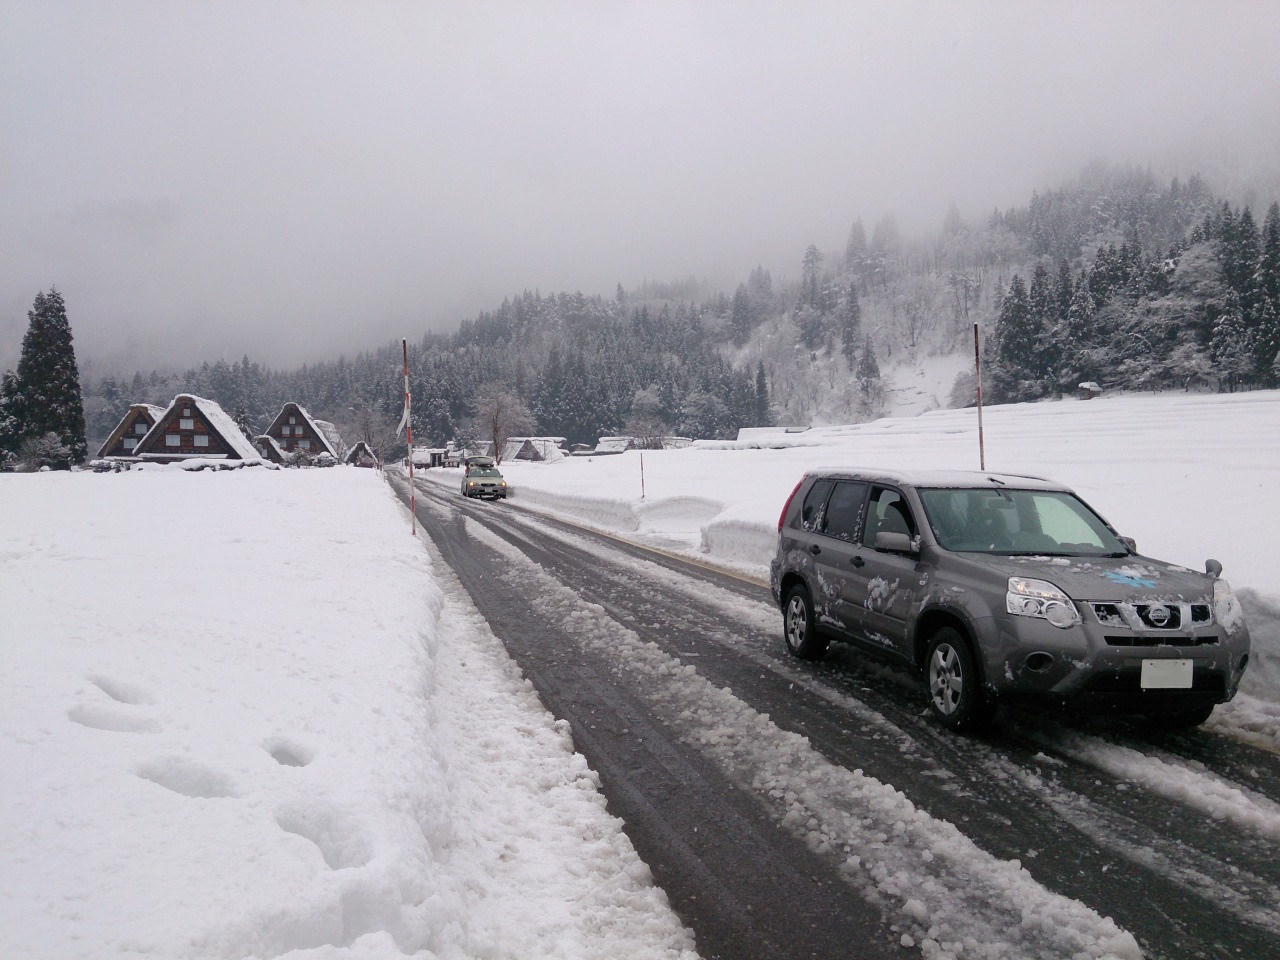 It was a wonderful experience to drive through the silent and traditional villages with snow.